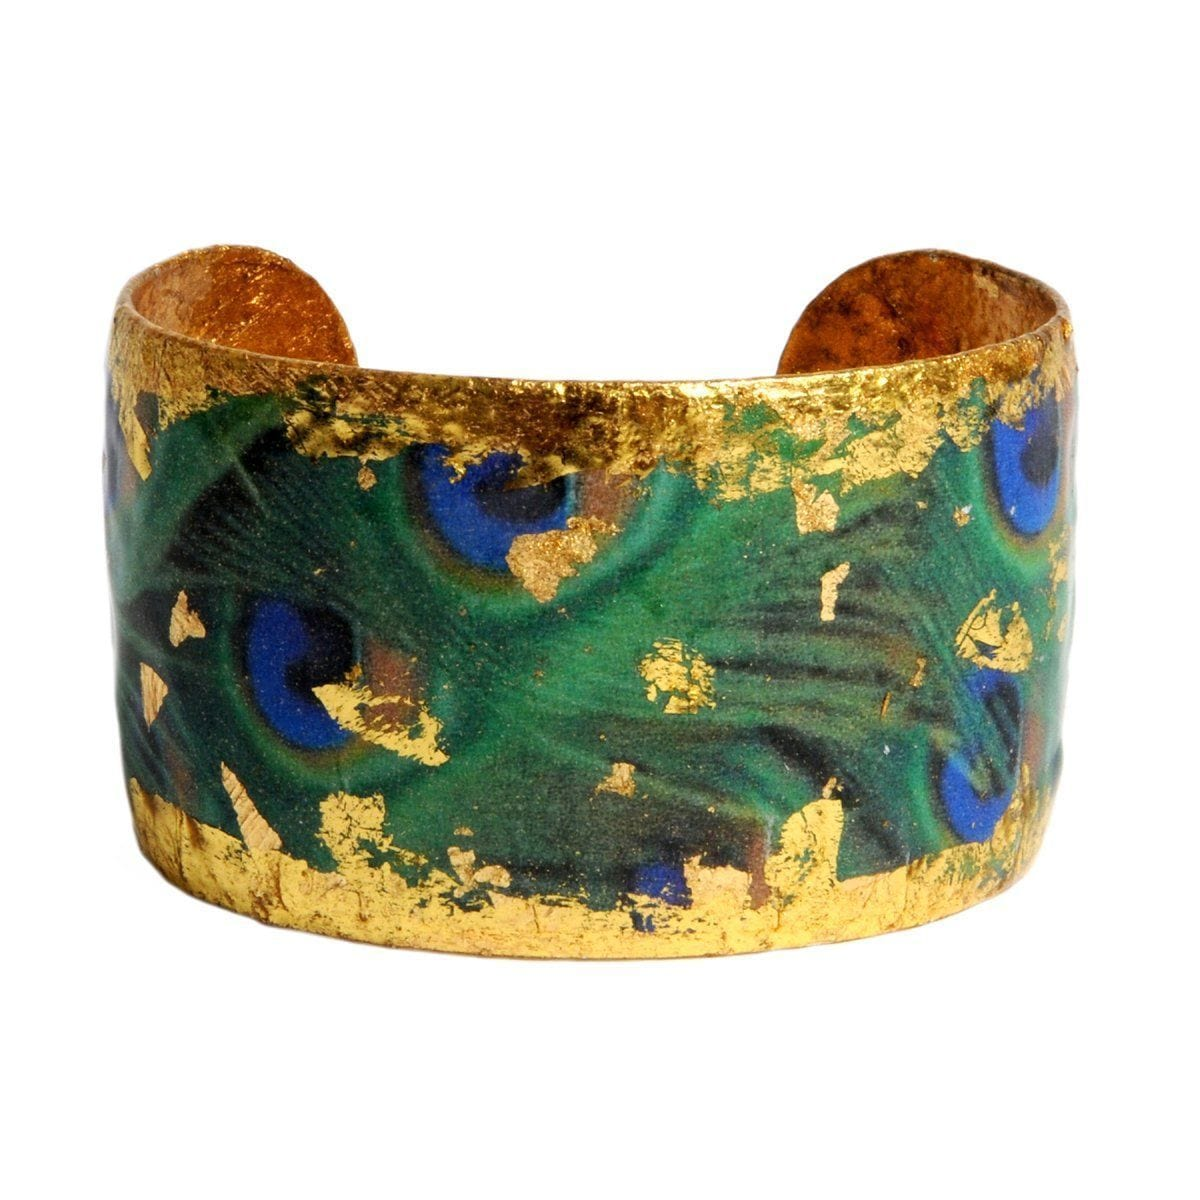 "Dreamy Peacock 1.5"" Gold Cuff - GN112-Evocateur-Renee Taylor Gallery"